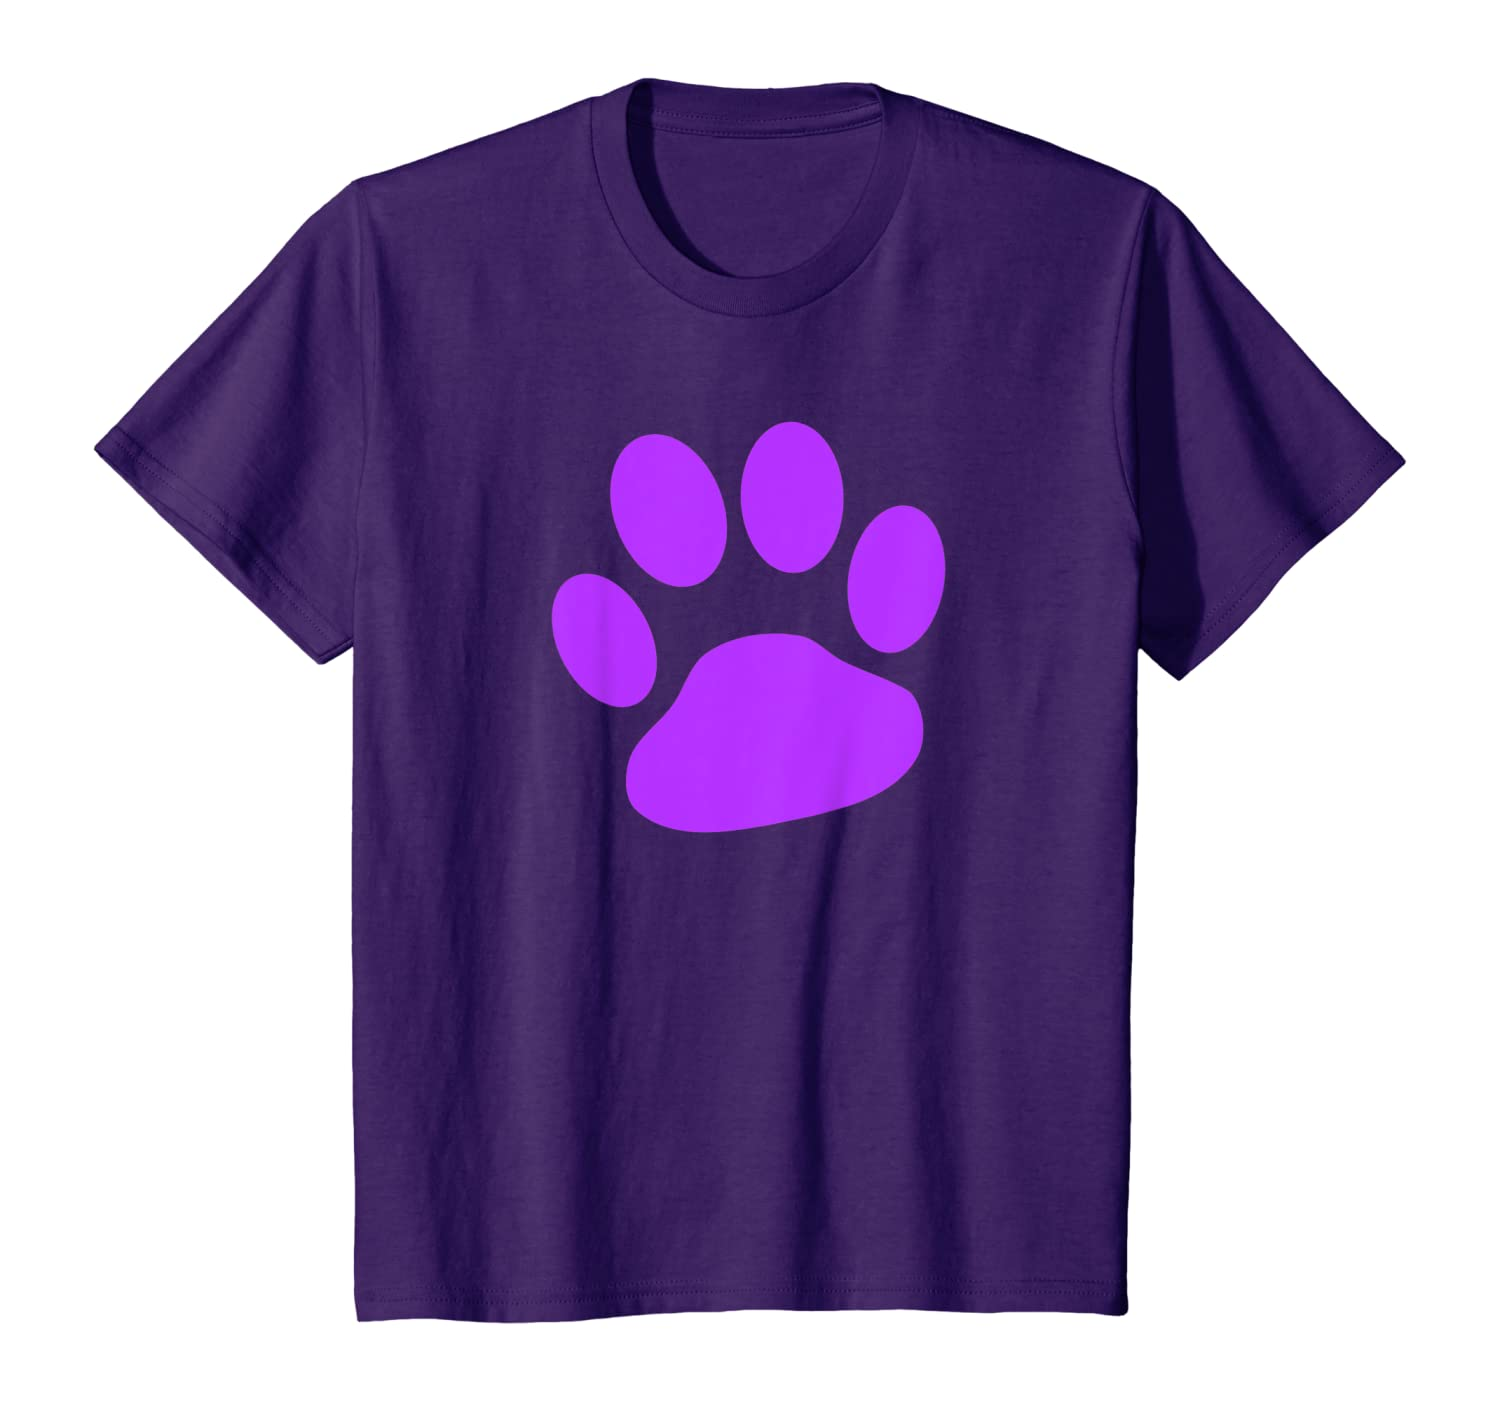 Amazon Com Purple Paw Print T Shirt Clothing Here you can explore hq paw print transparent illustrations, icons and clipart with filter setting like size, type, color etc. amazon com